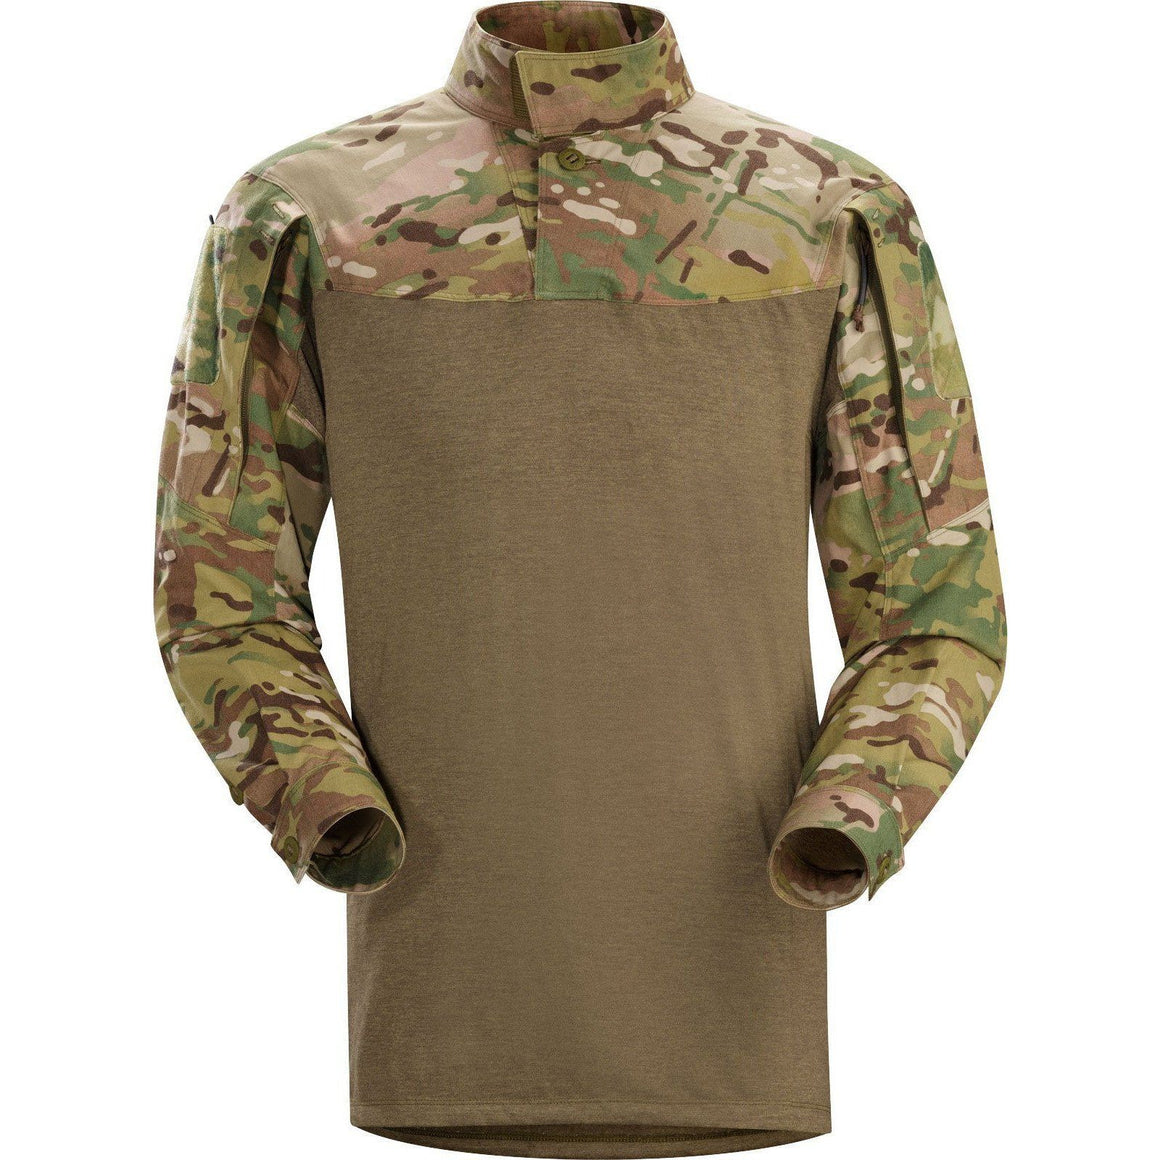 Arc'teryx LEAF Assault Shirt FR - MultiCam